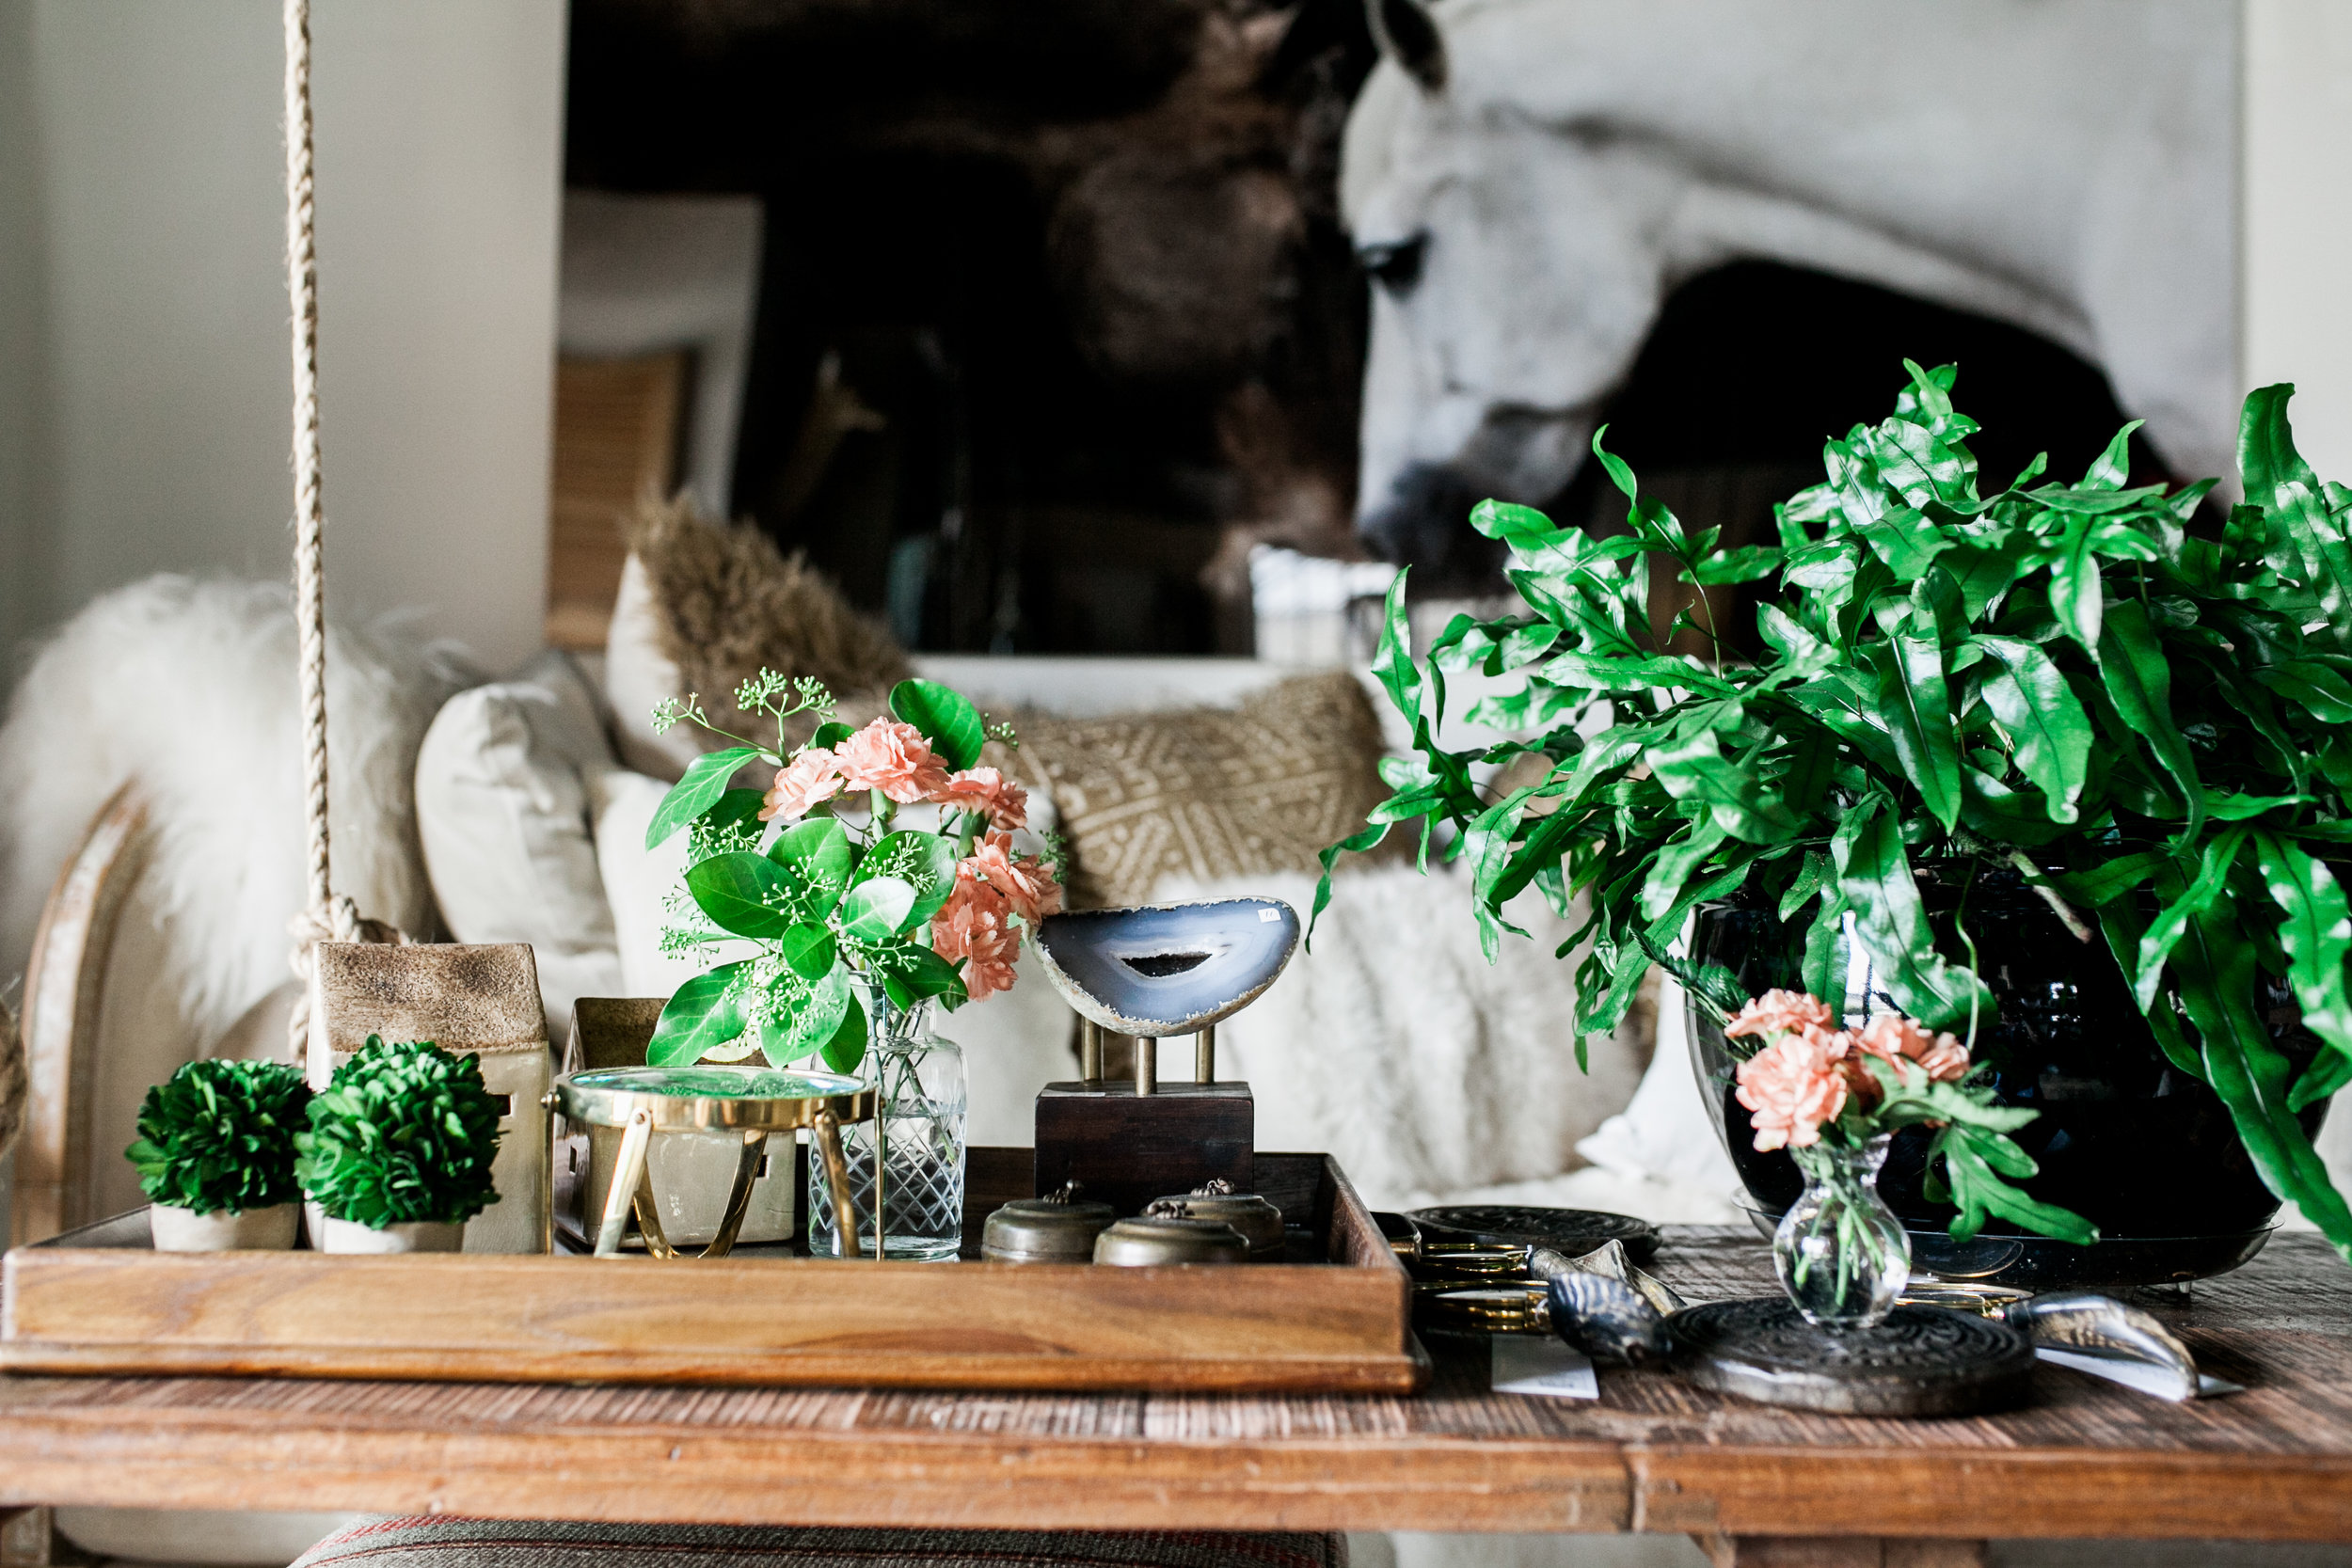 Decorative table items and plants.